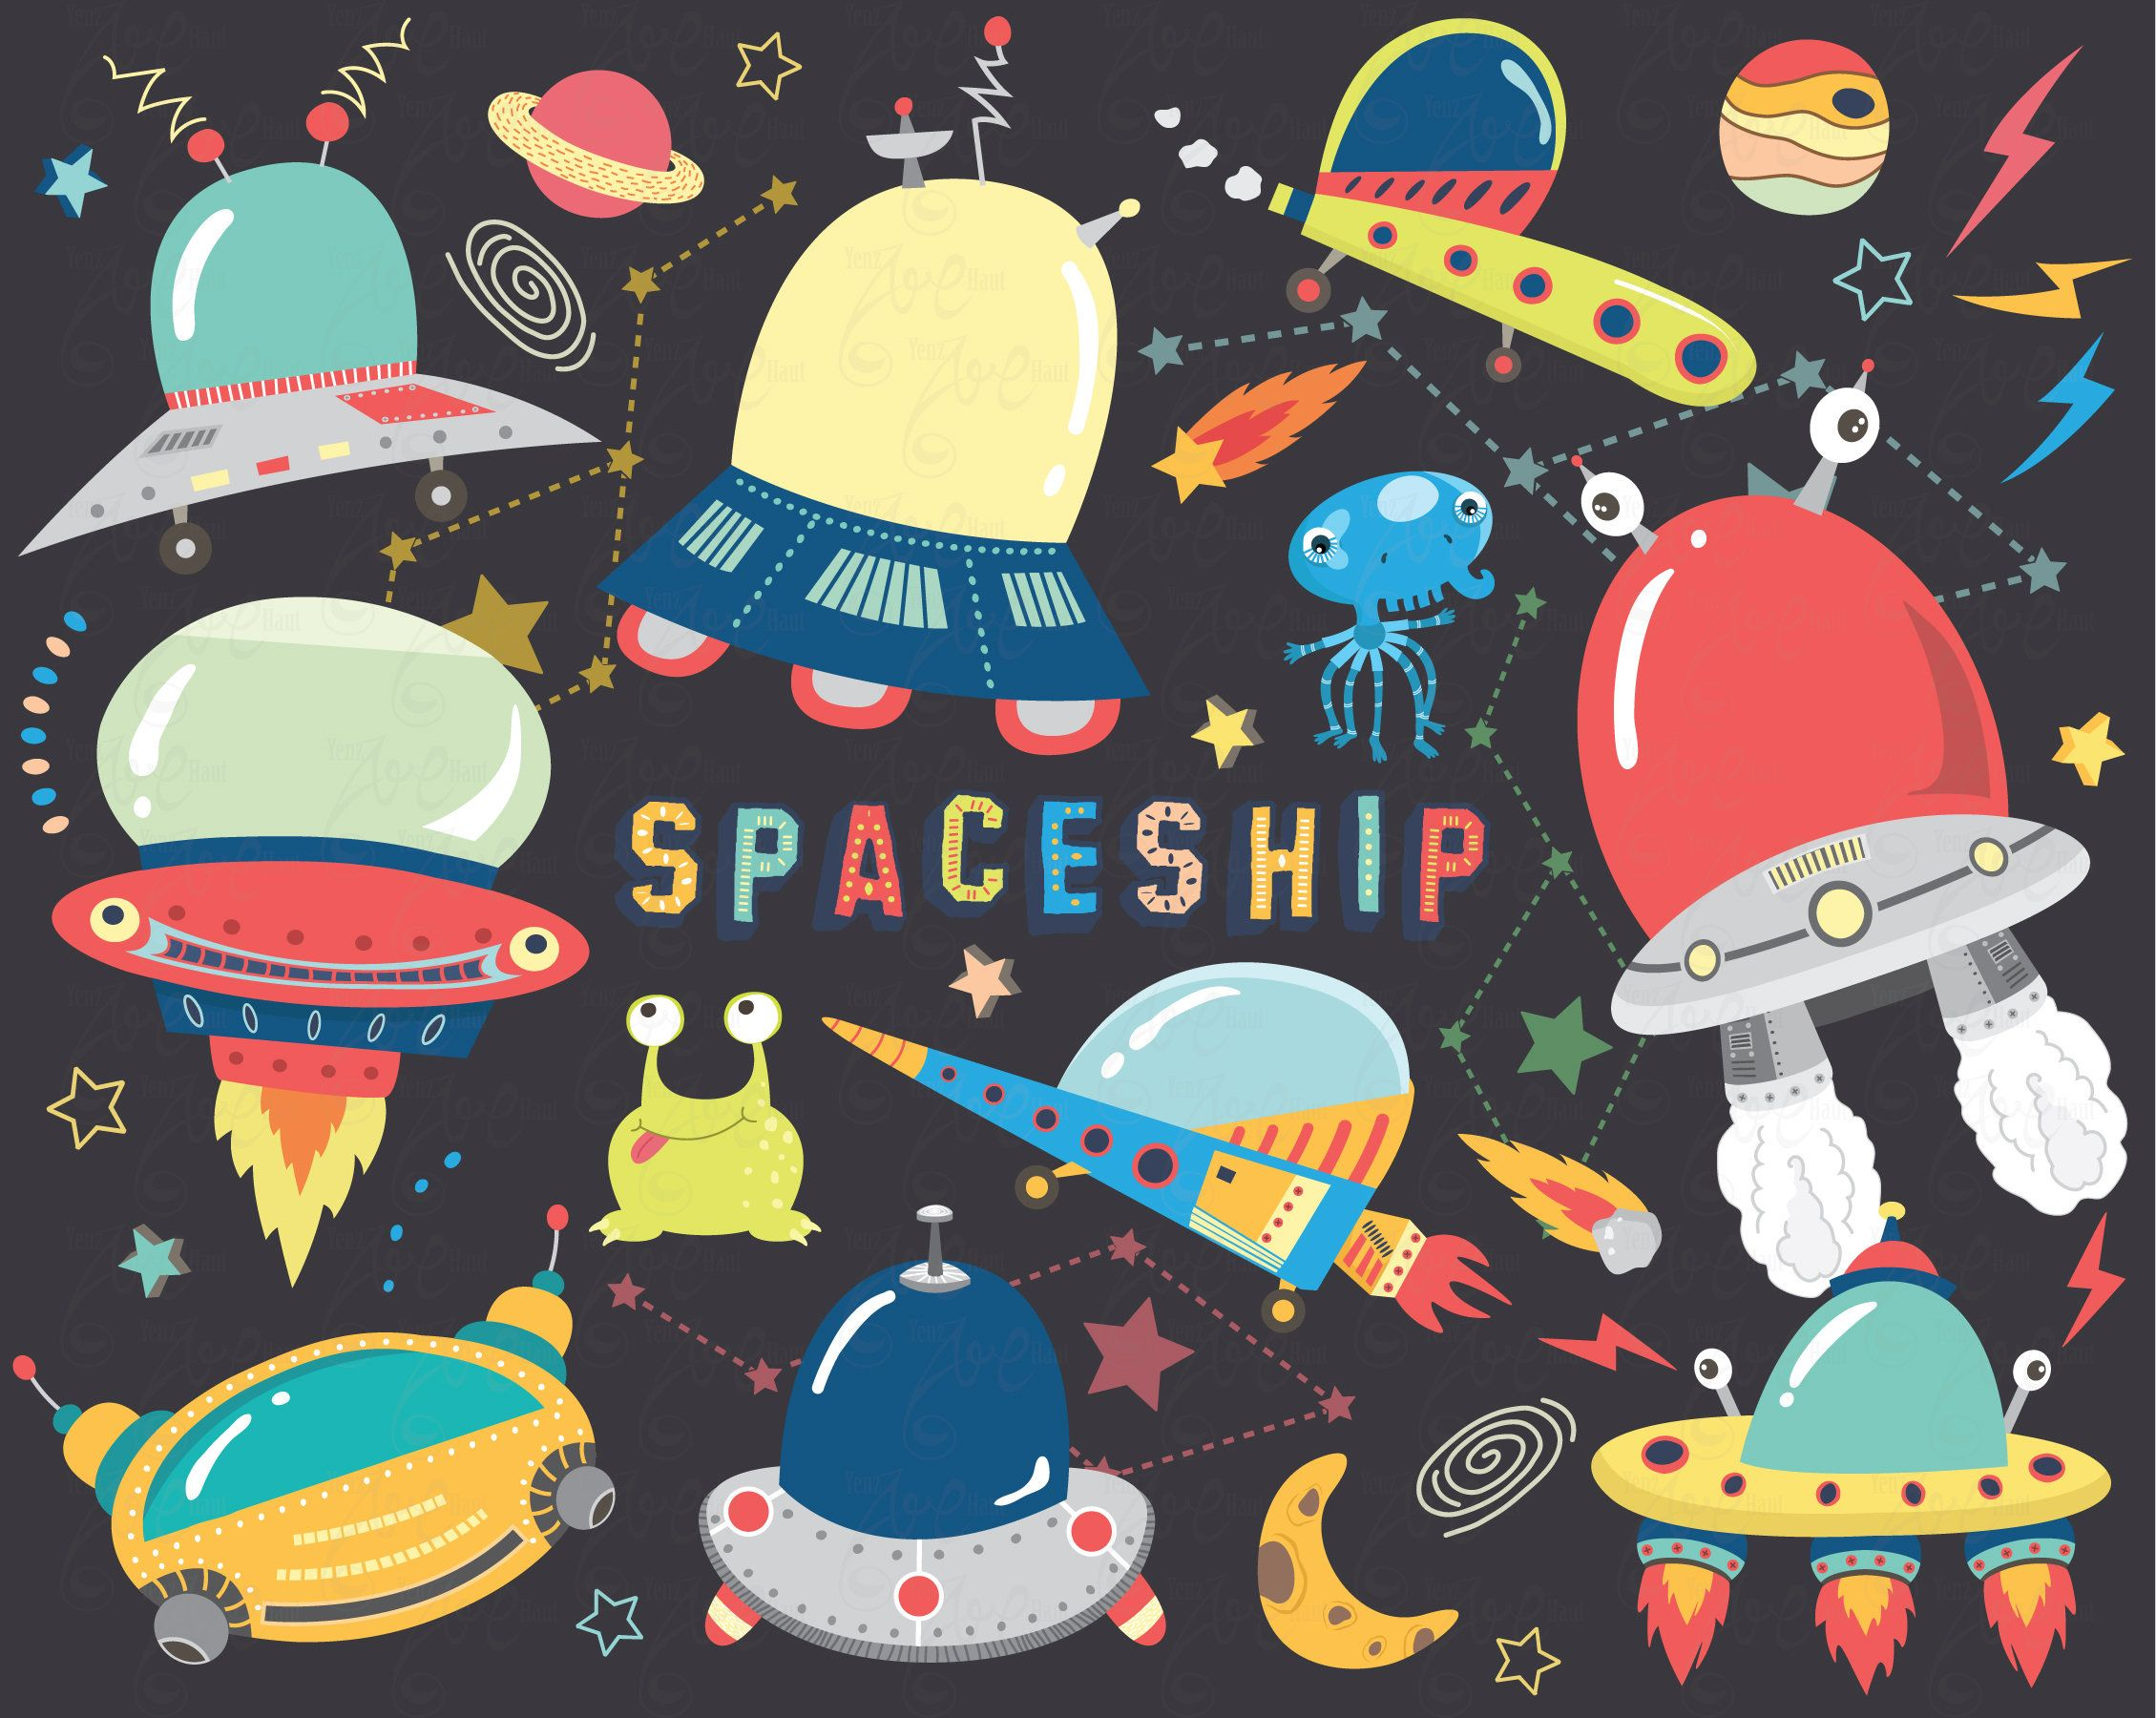 Space ship clipart.